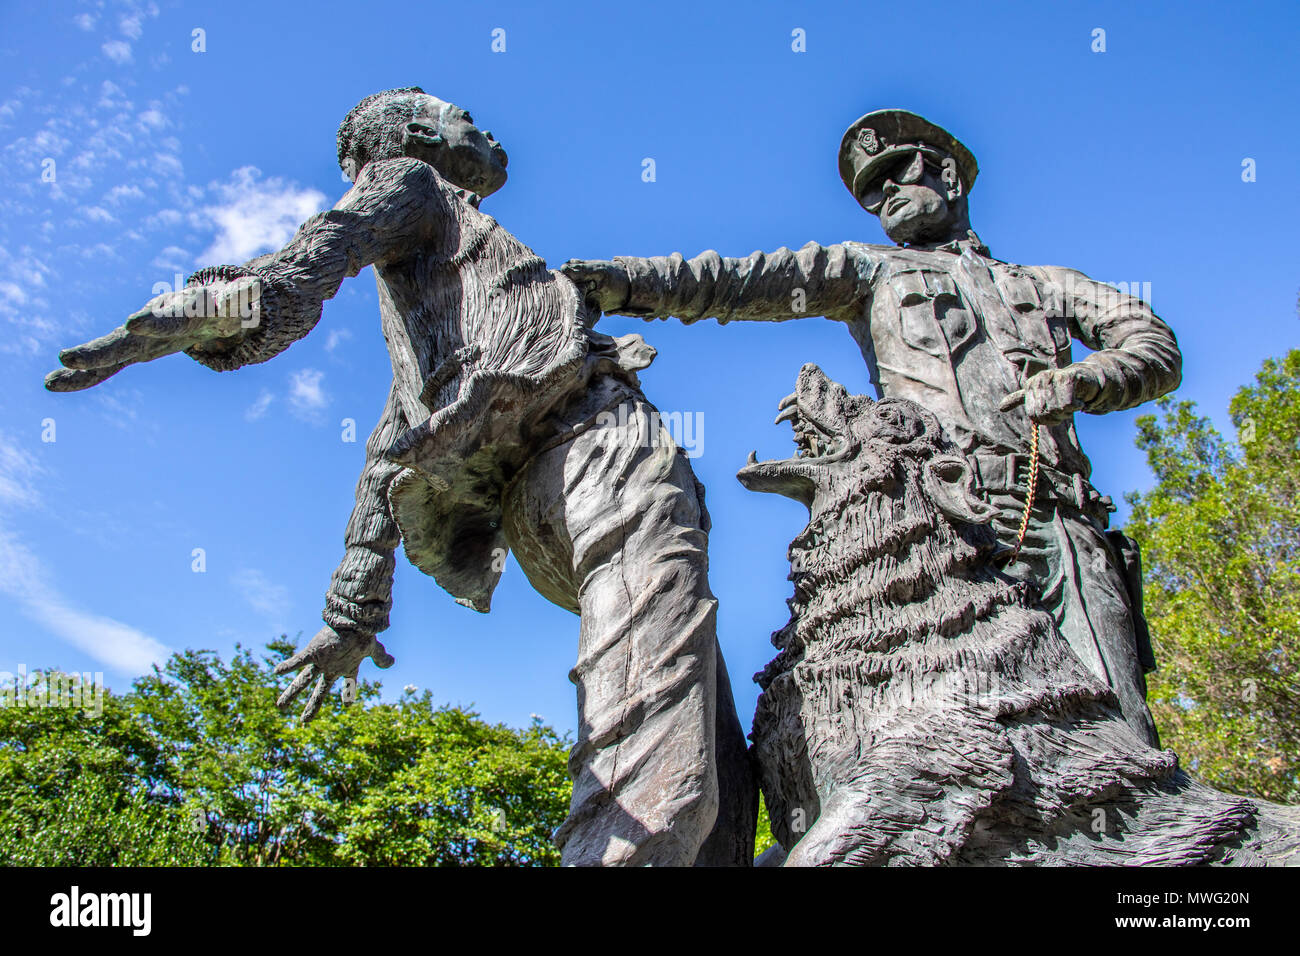 The Foot Soldier, statue sculpted by Ronald S McDowell, Kelly Ingram Park, Birmingham, Alabama, USA - Stock Image